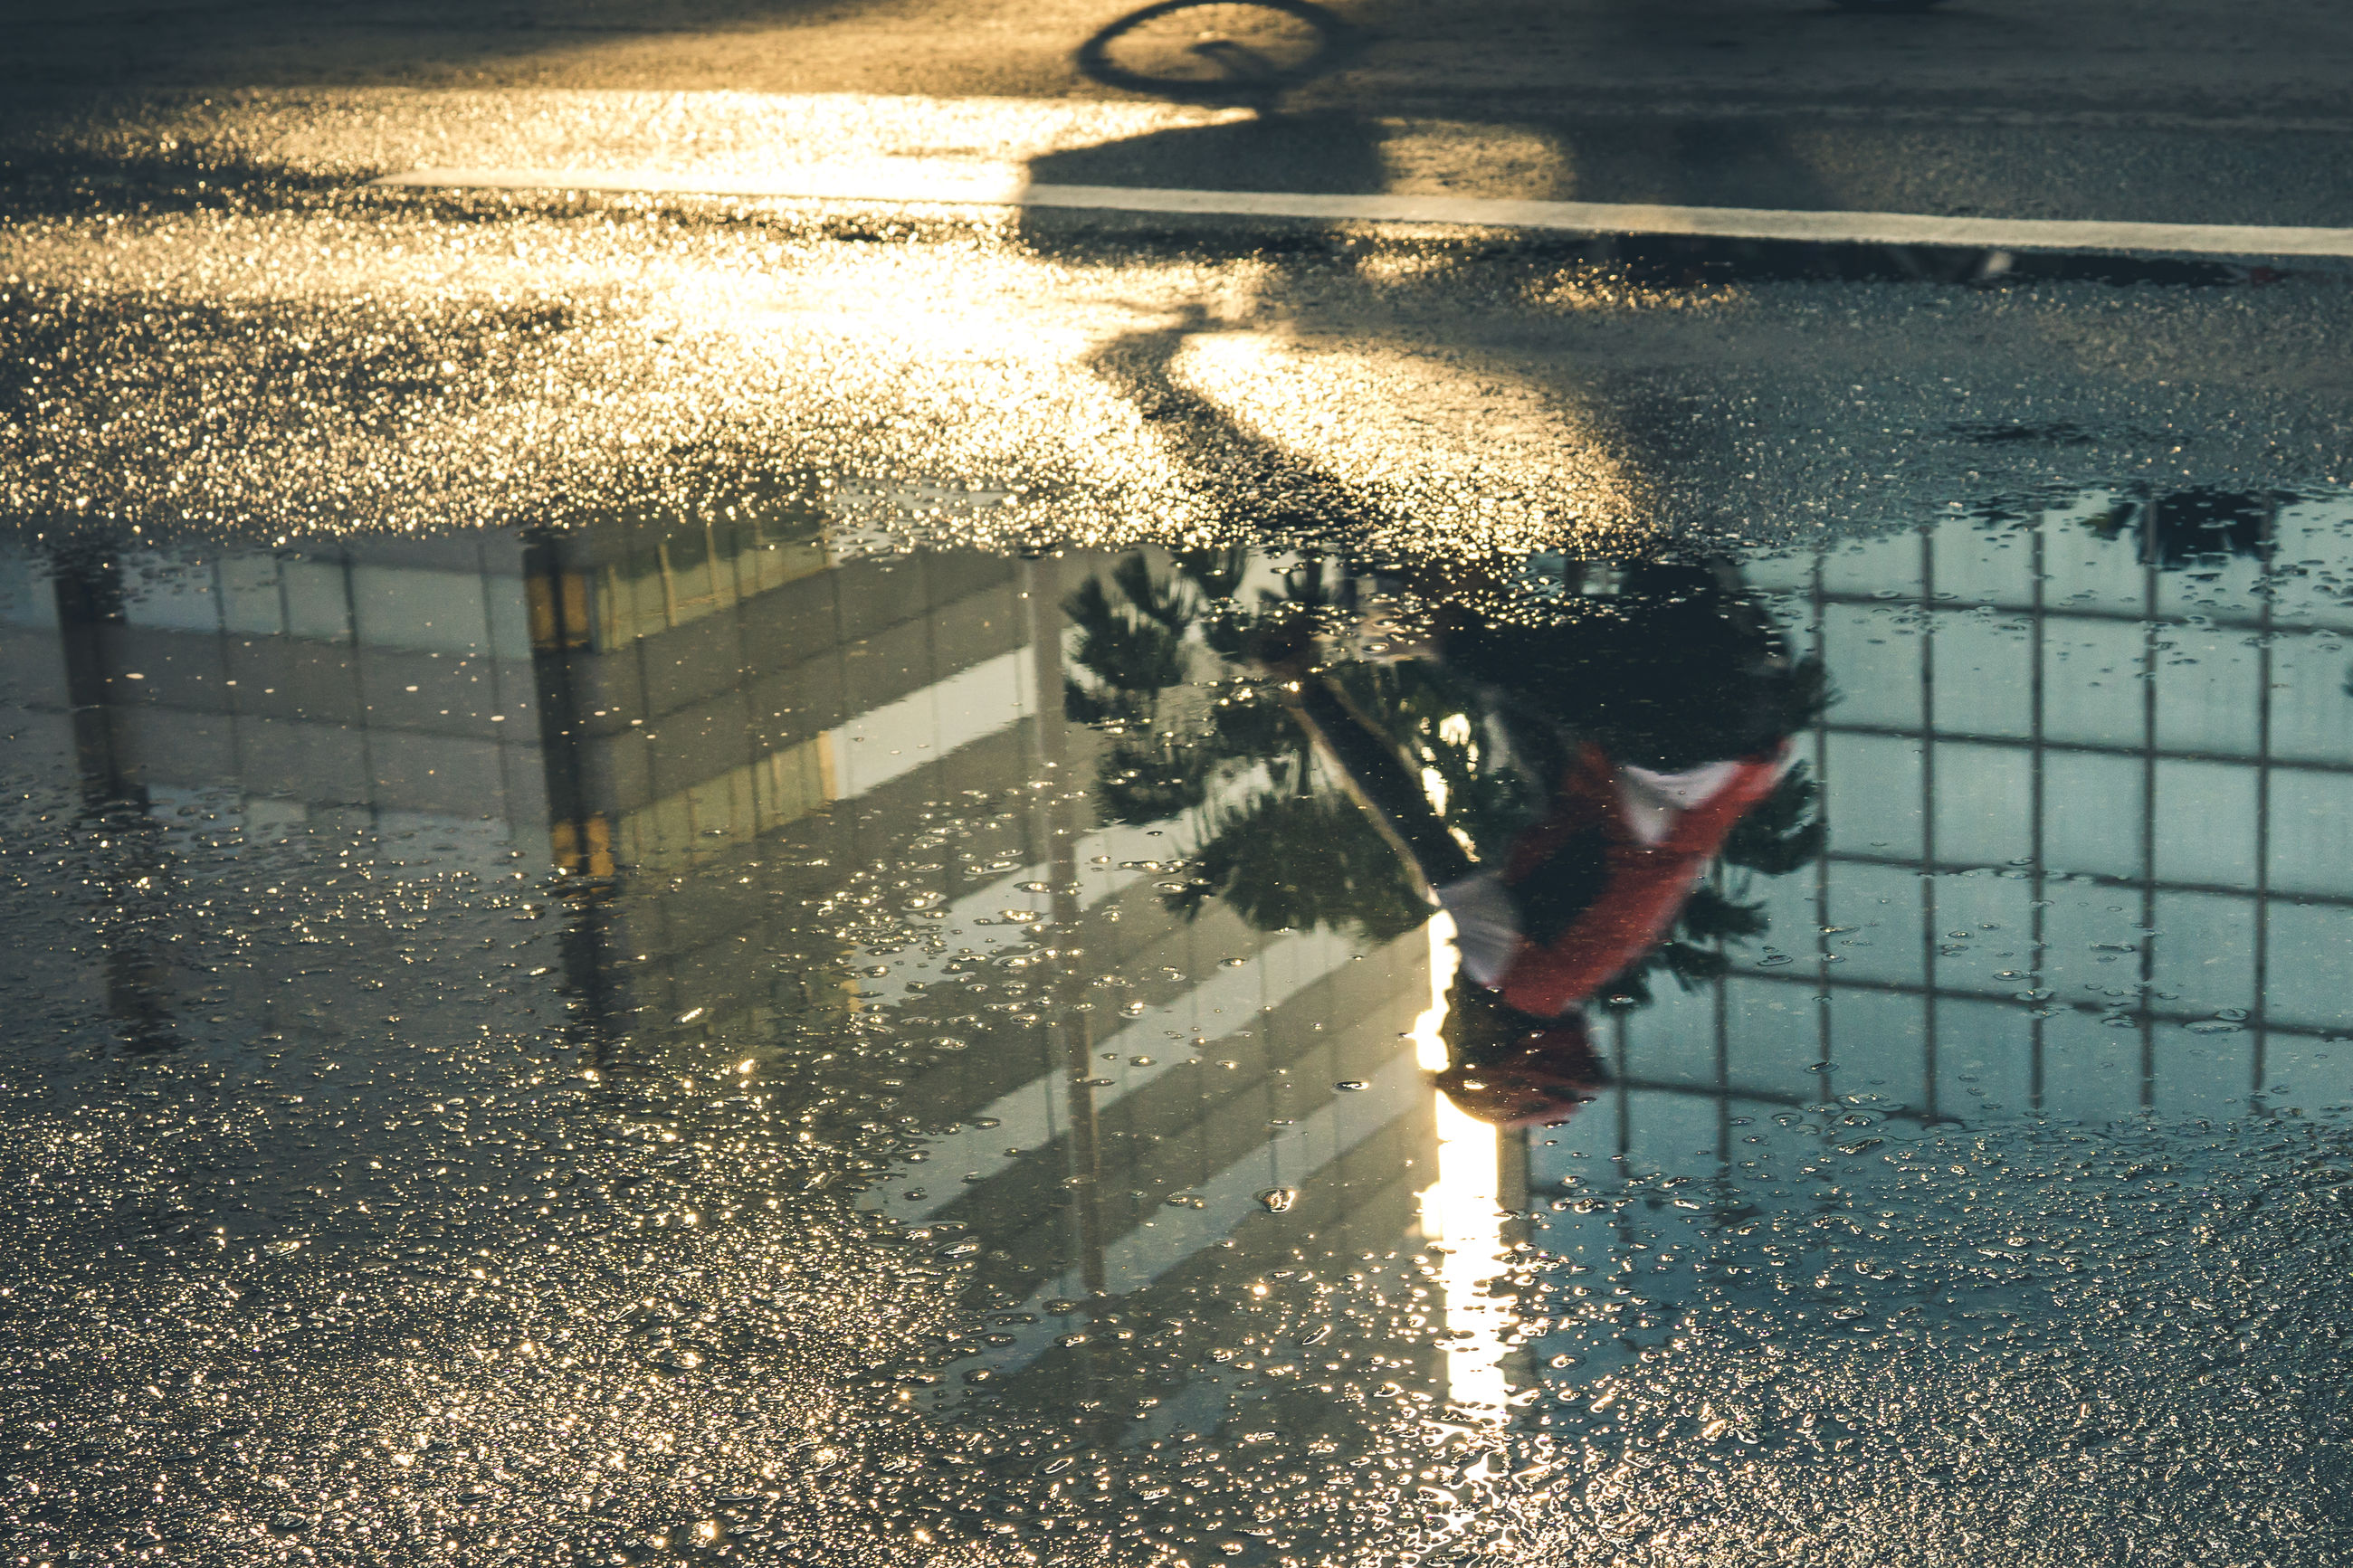 water, sunlight, nature, reflection, day, real people, shadow, architecture, outdoors, high angle view, wet, one person, puddle, lifestyles, built structure, men, transportation, rain, swimming pool